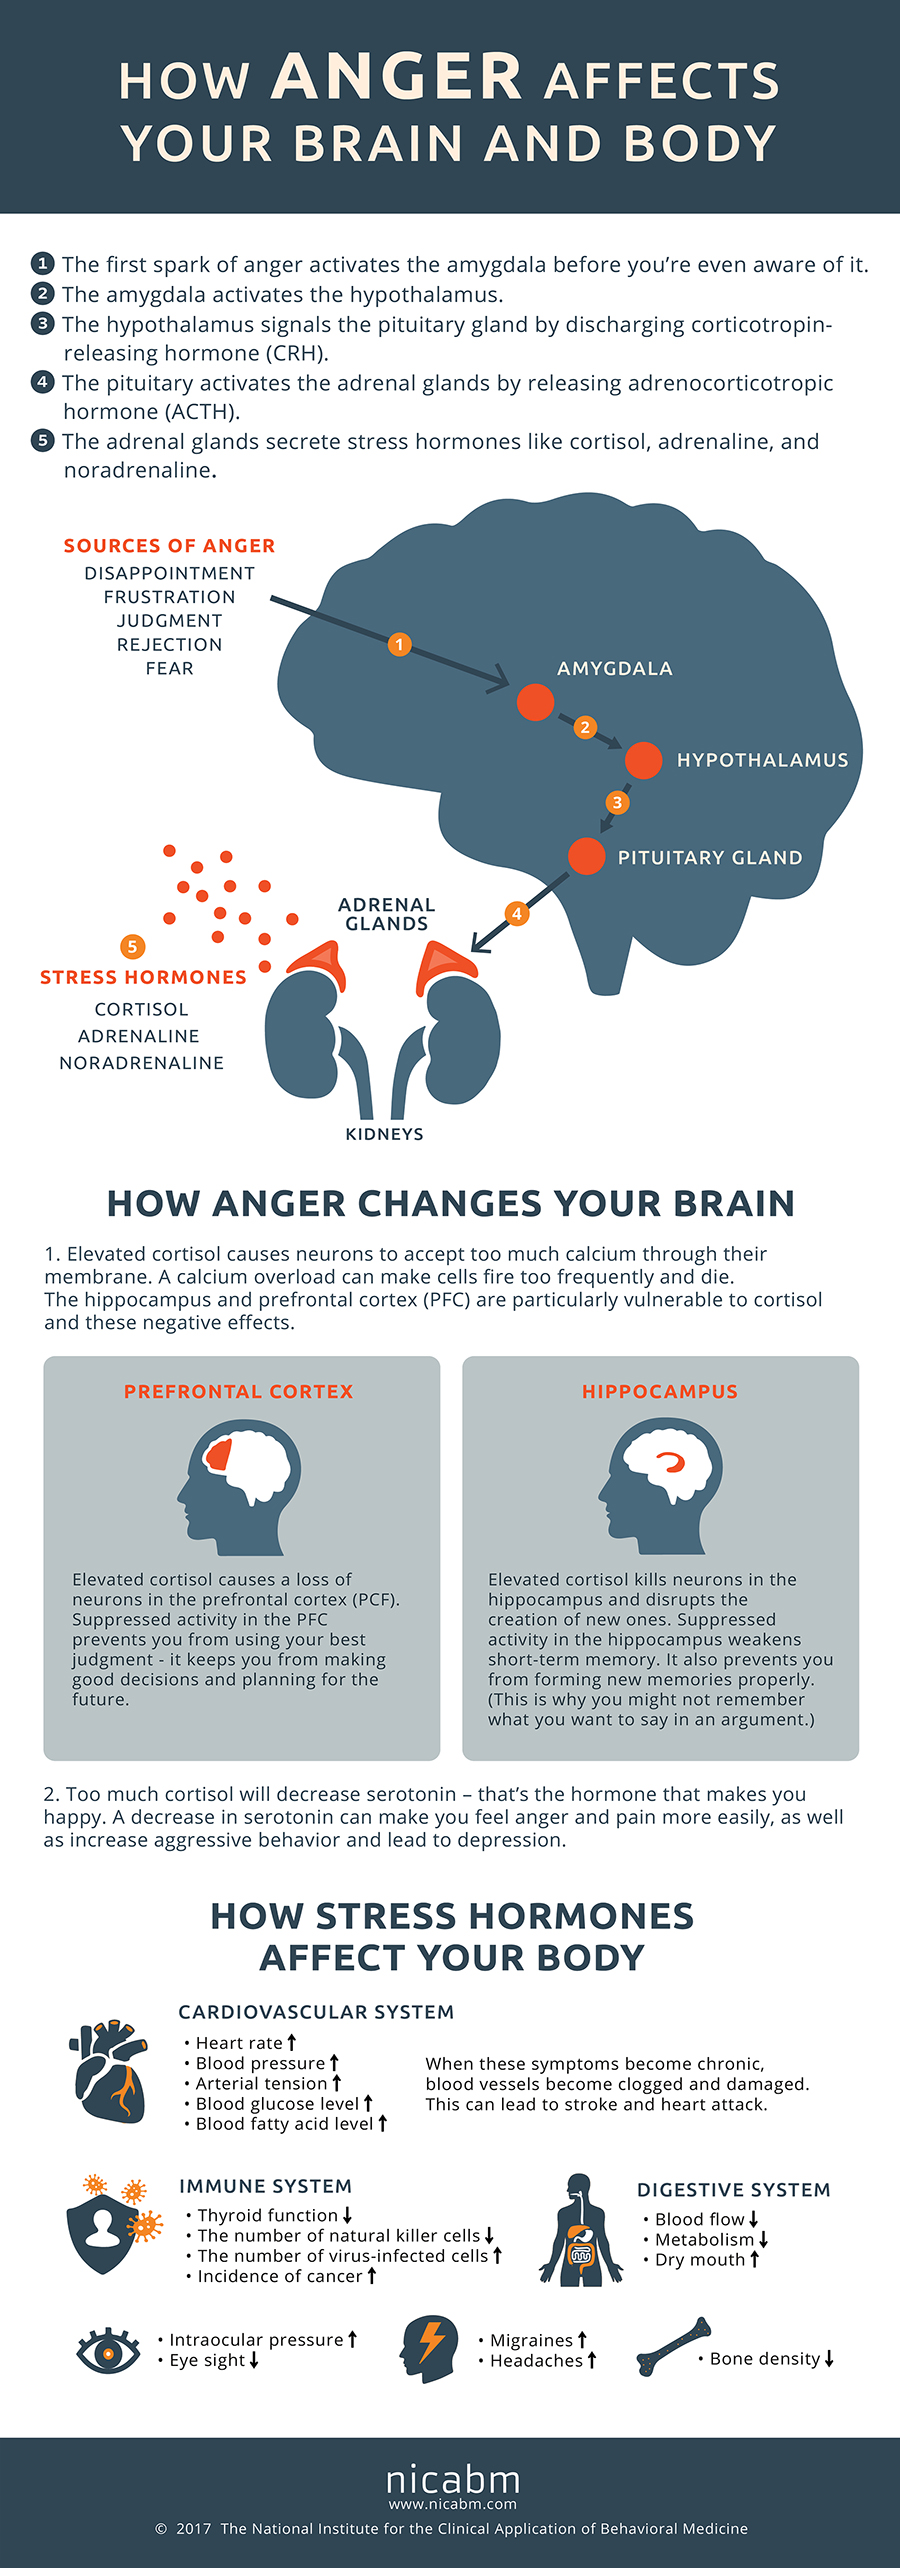 How Anger Affects The Brain And Body Infographic - How much is the human body worth infographic